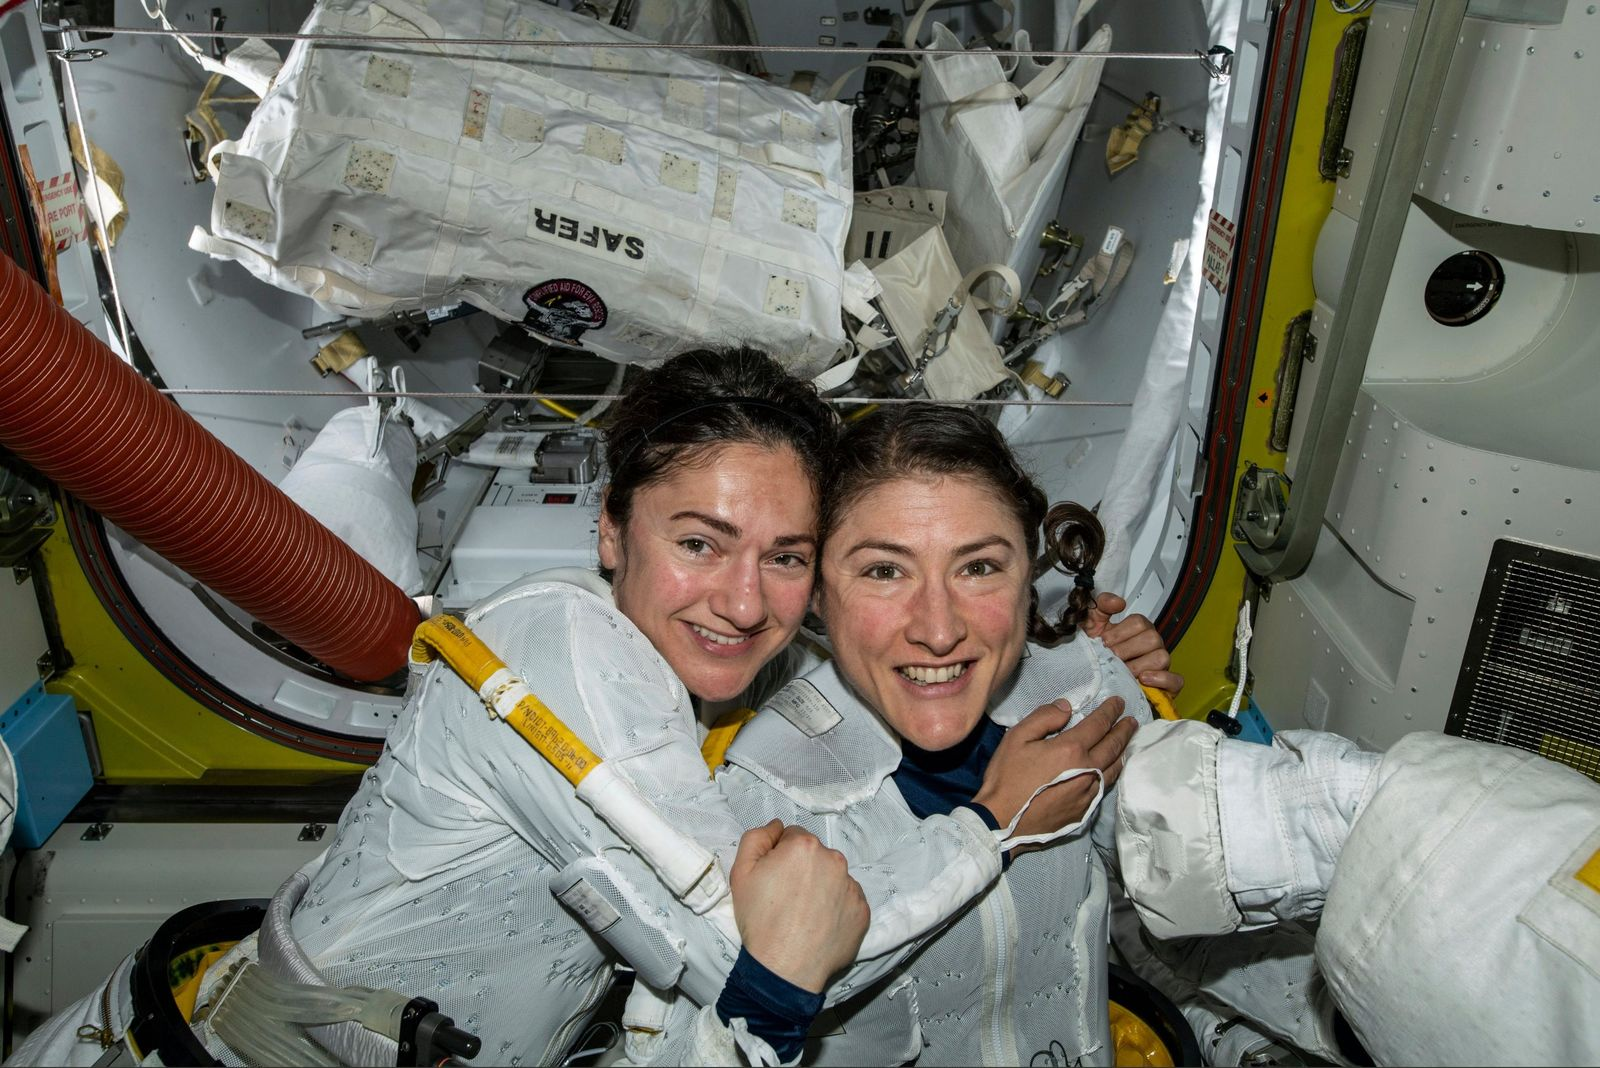 In this photo released by NASA on Friday, Oct. 18, 2019, U.S. astronauts Jessica Meir, left, and Christina Koch pose for a photo in the International Space Station. The astronauts who took part in the first all-female spacewalk are still uplifted by all the excitement down on Earth. Meir said Monday, Oct. 21 that when she floated outside last week, she wasn't thinking about whether she was going out with a man or woman because everyone is held to the same standard. Nonetheless, she says it was extra special being accompanied by Koch, a close friend.  (NASA via AP)